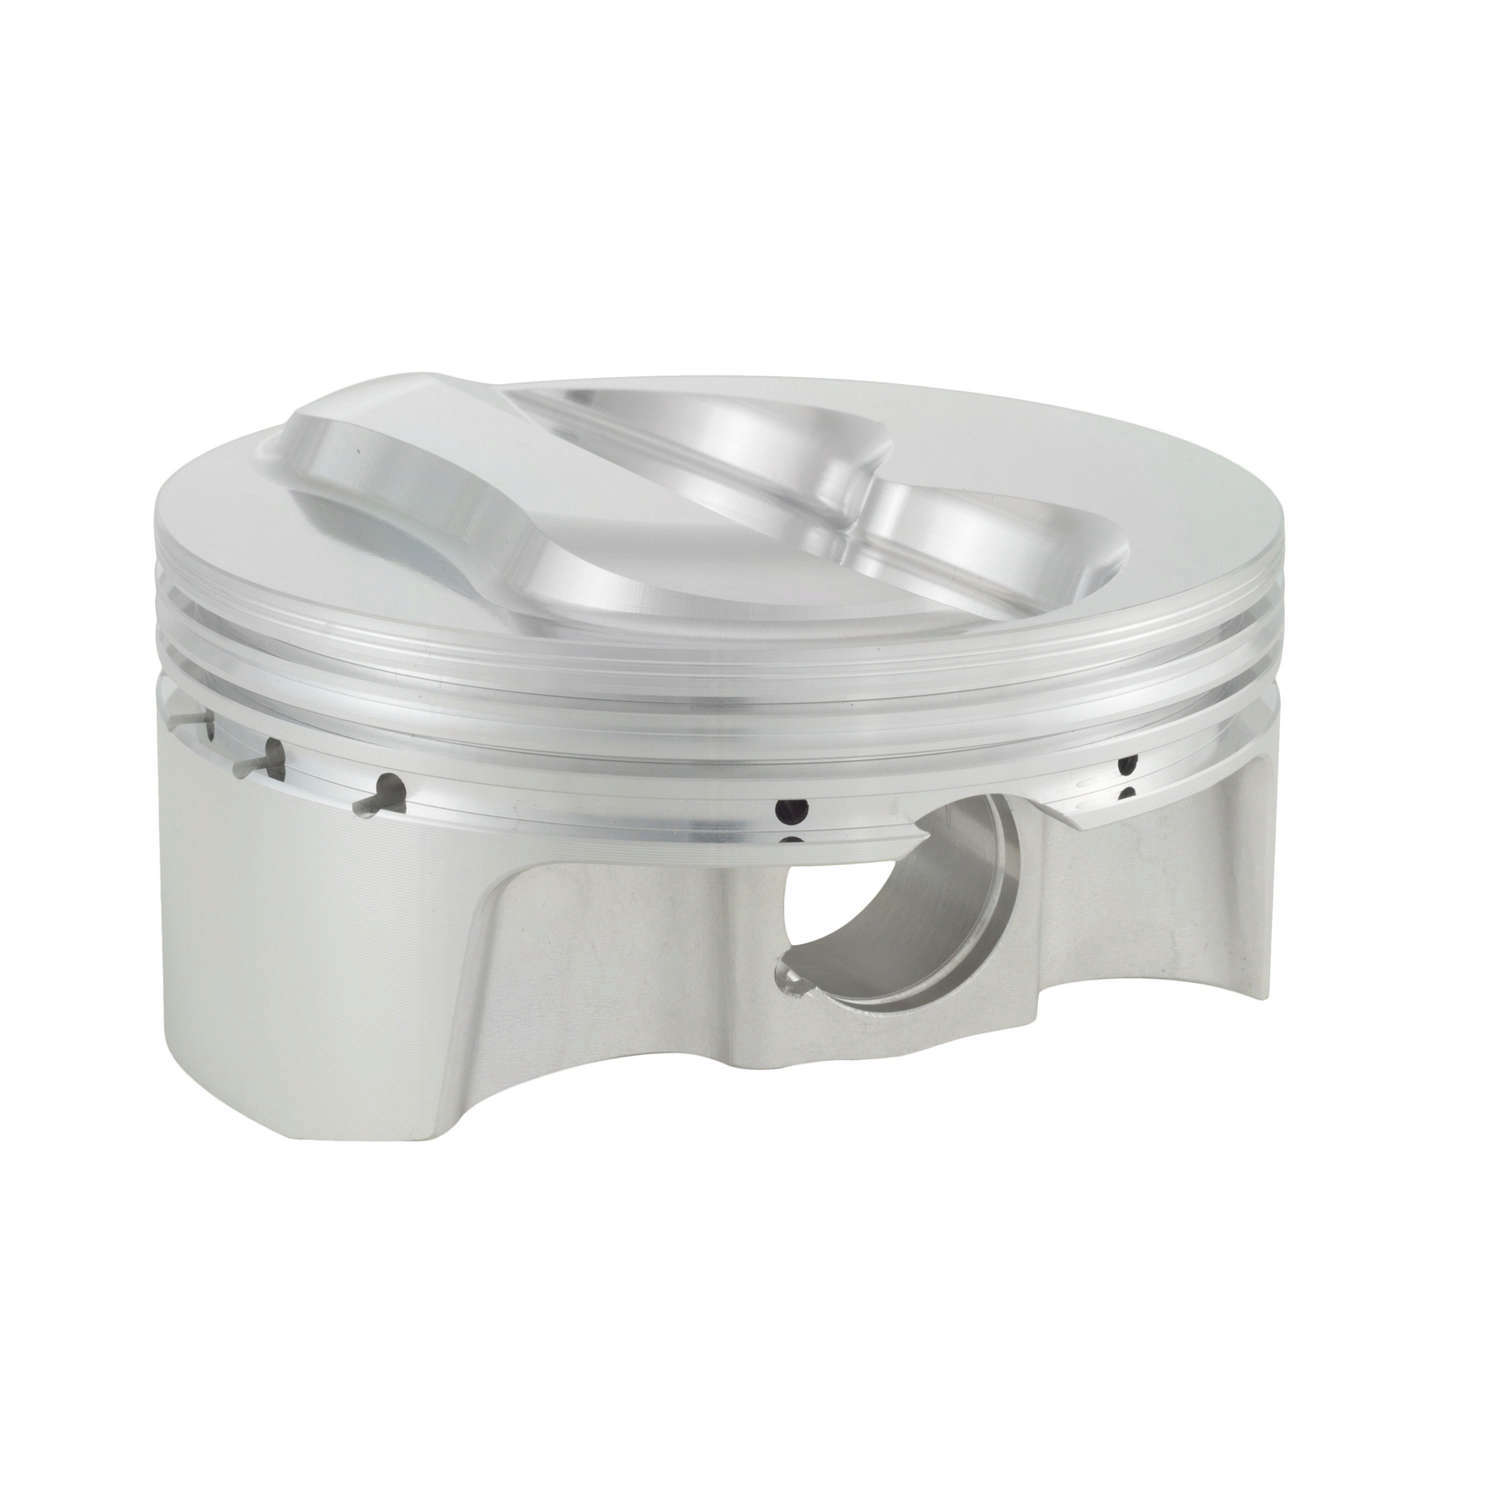 Bullet Pistons BC1220-030-8 Piston and Ring, Forged, 4.155 in Bore, 1.5 x 1.5 x 3 mm Ring Grooves, Plus 5.1 cc, Small Block Chevy, Kit